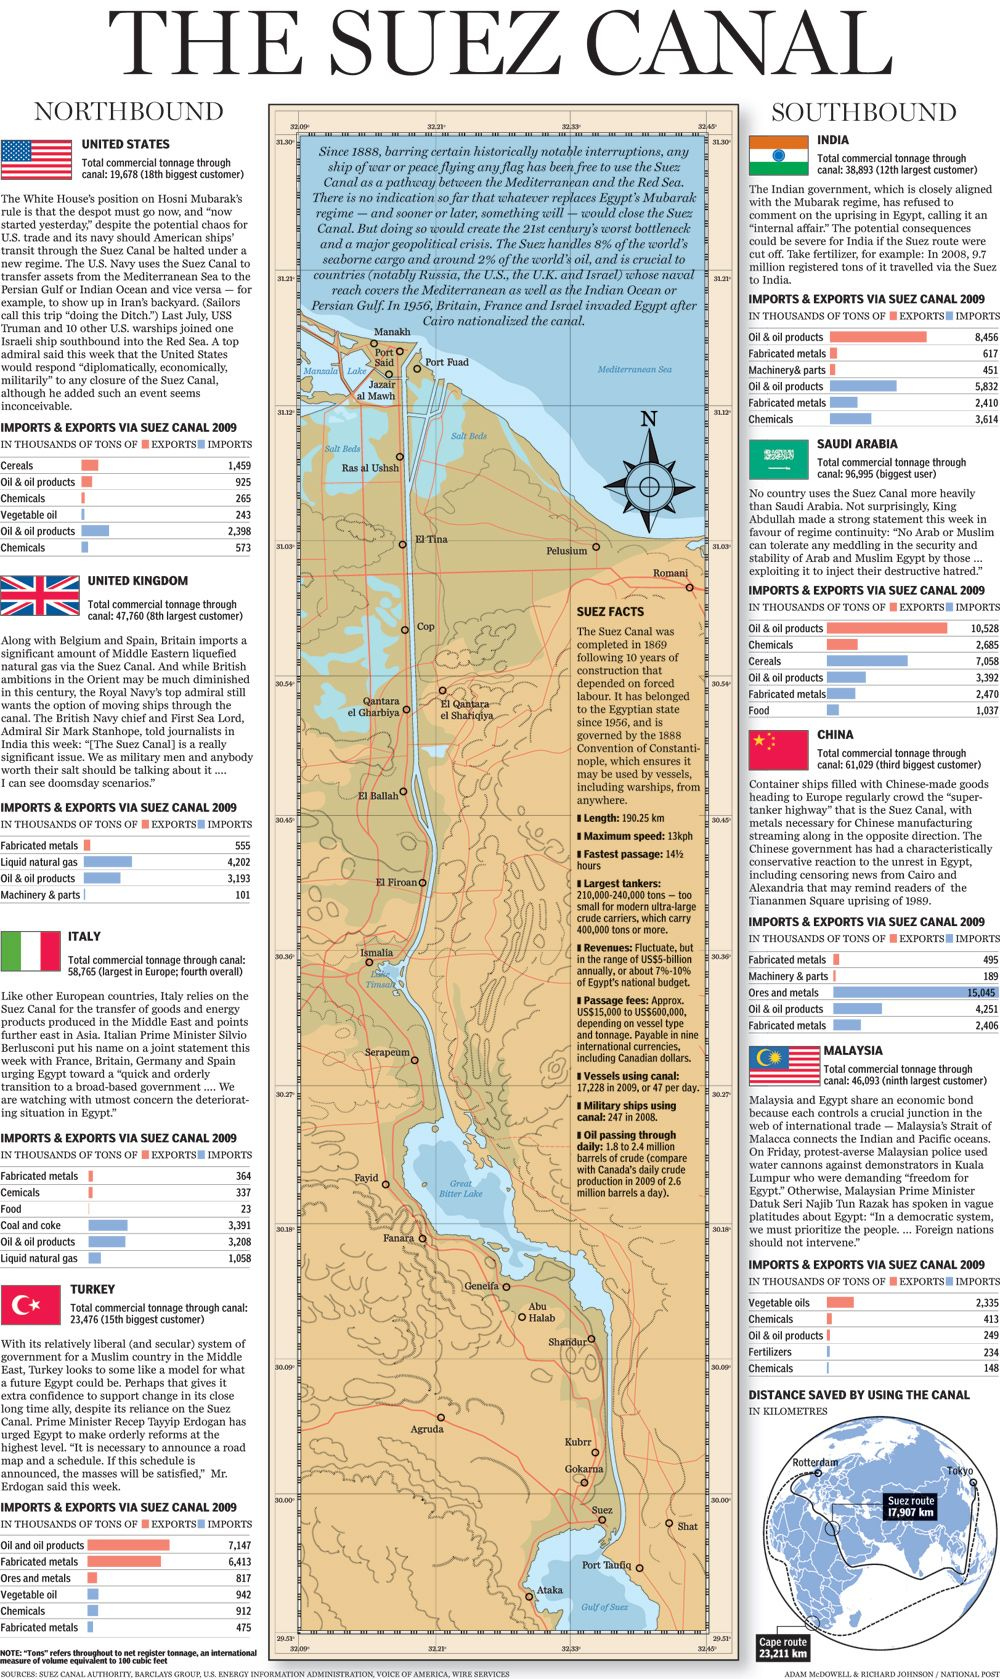 The Suez Canal Crisis 1956 - On July 26, 1956 Egyptian President ...